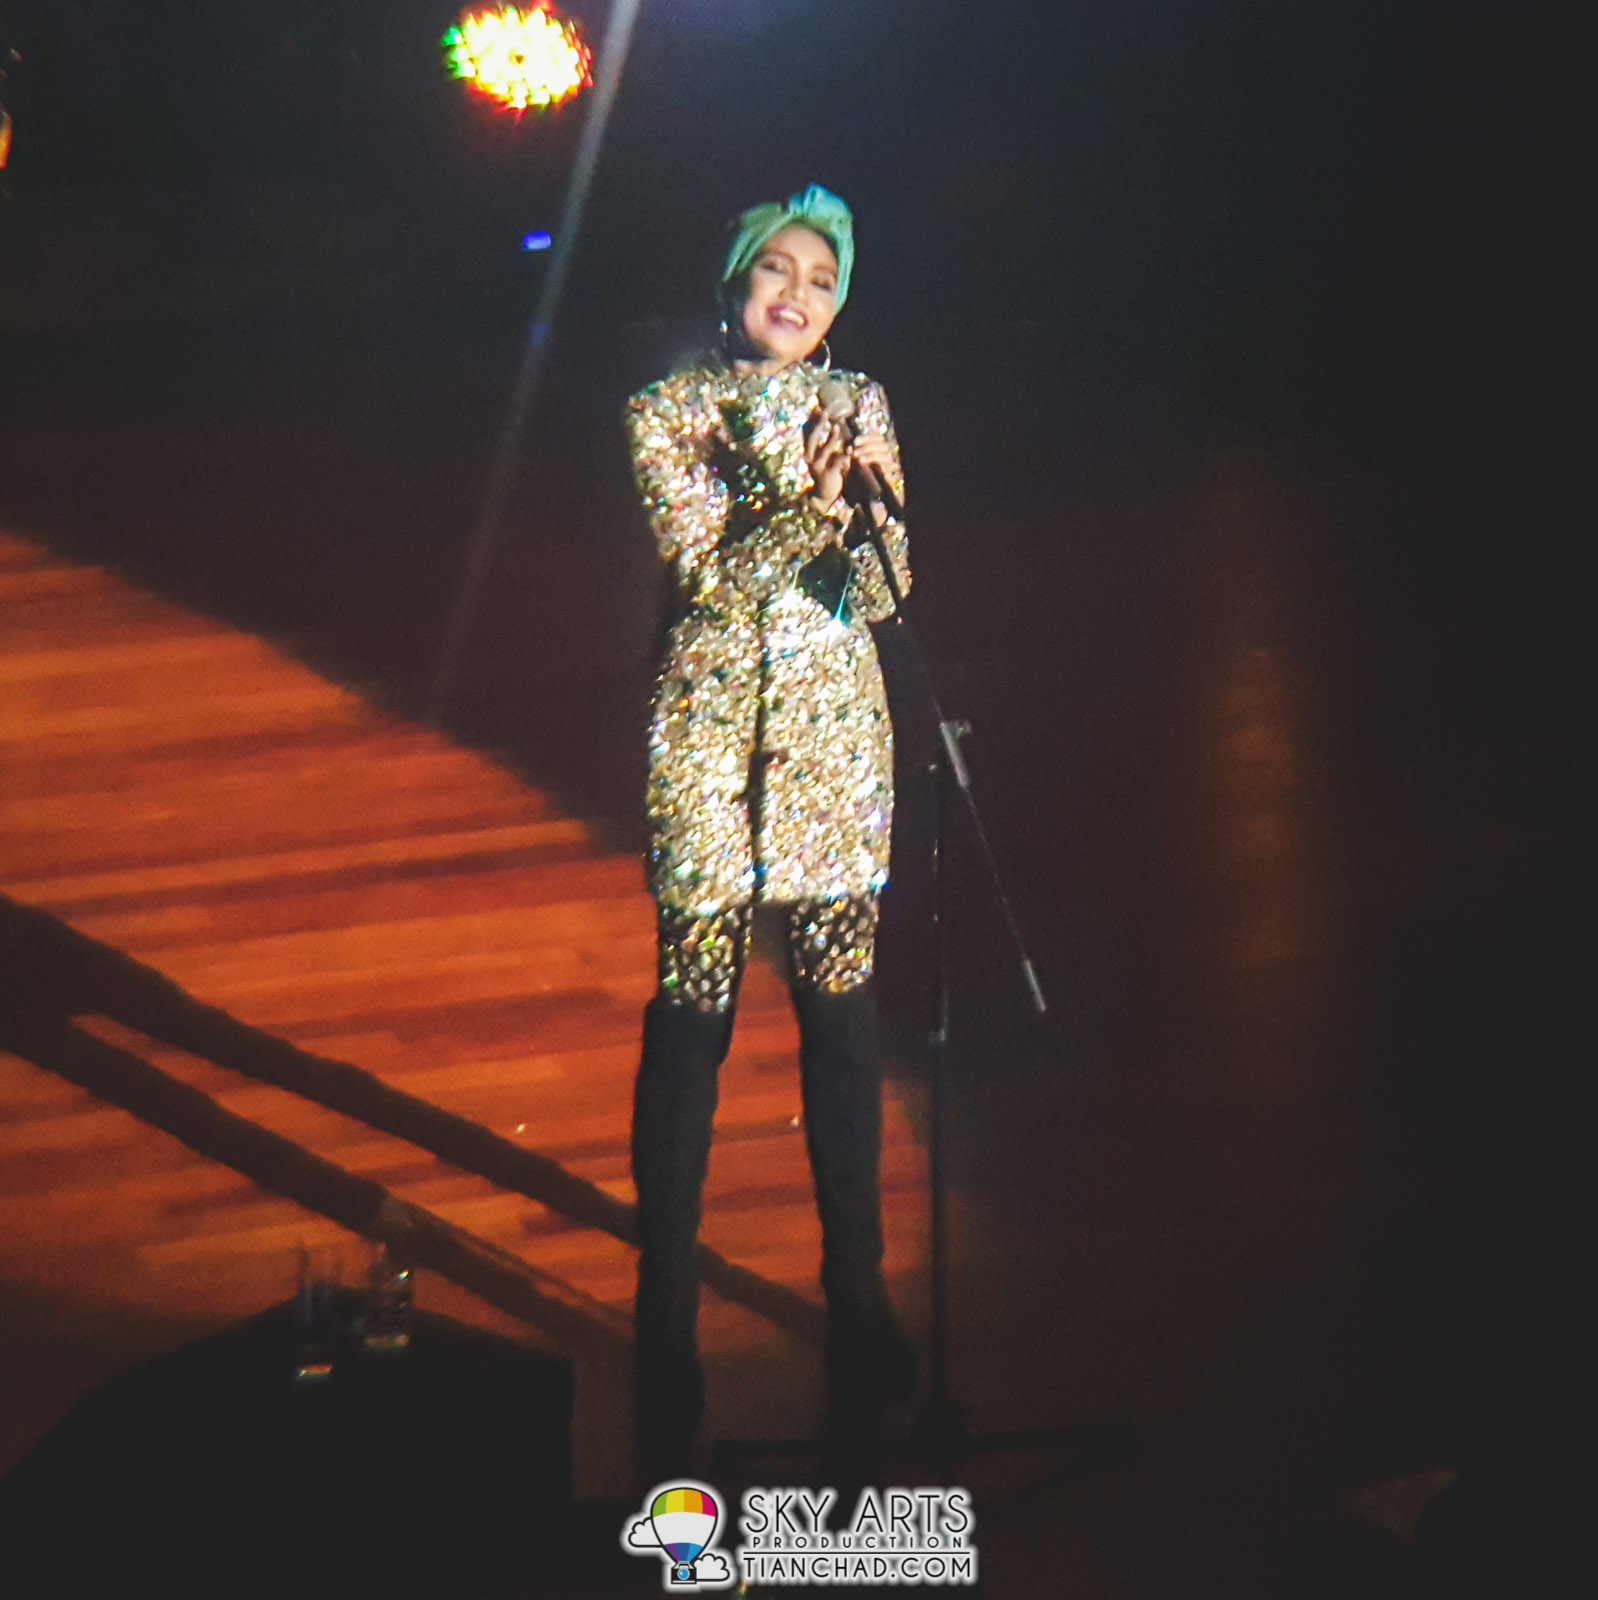 ] Sparkling Night at Yuna Live In Malaysia 2015